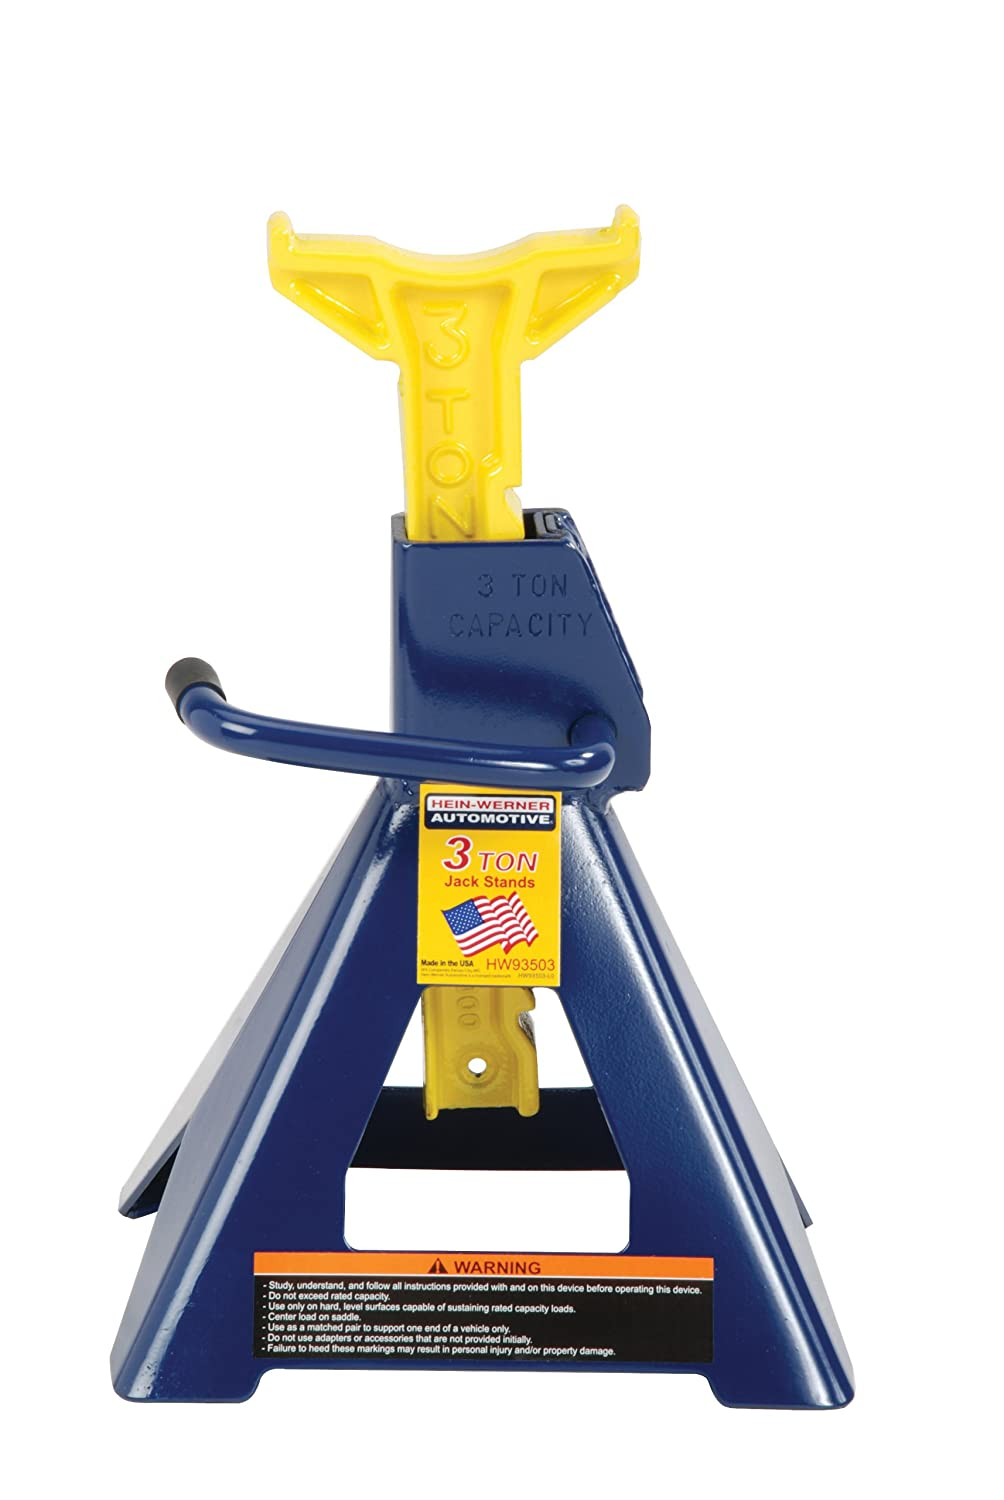 Hein-Werner Blue/Yellow Jack Stands, 6 Ton Capacity